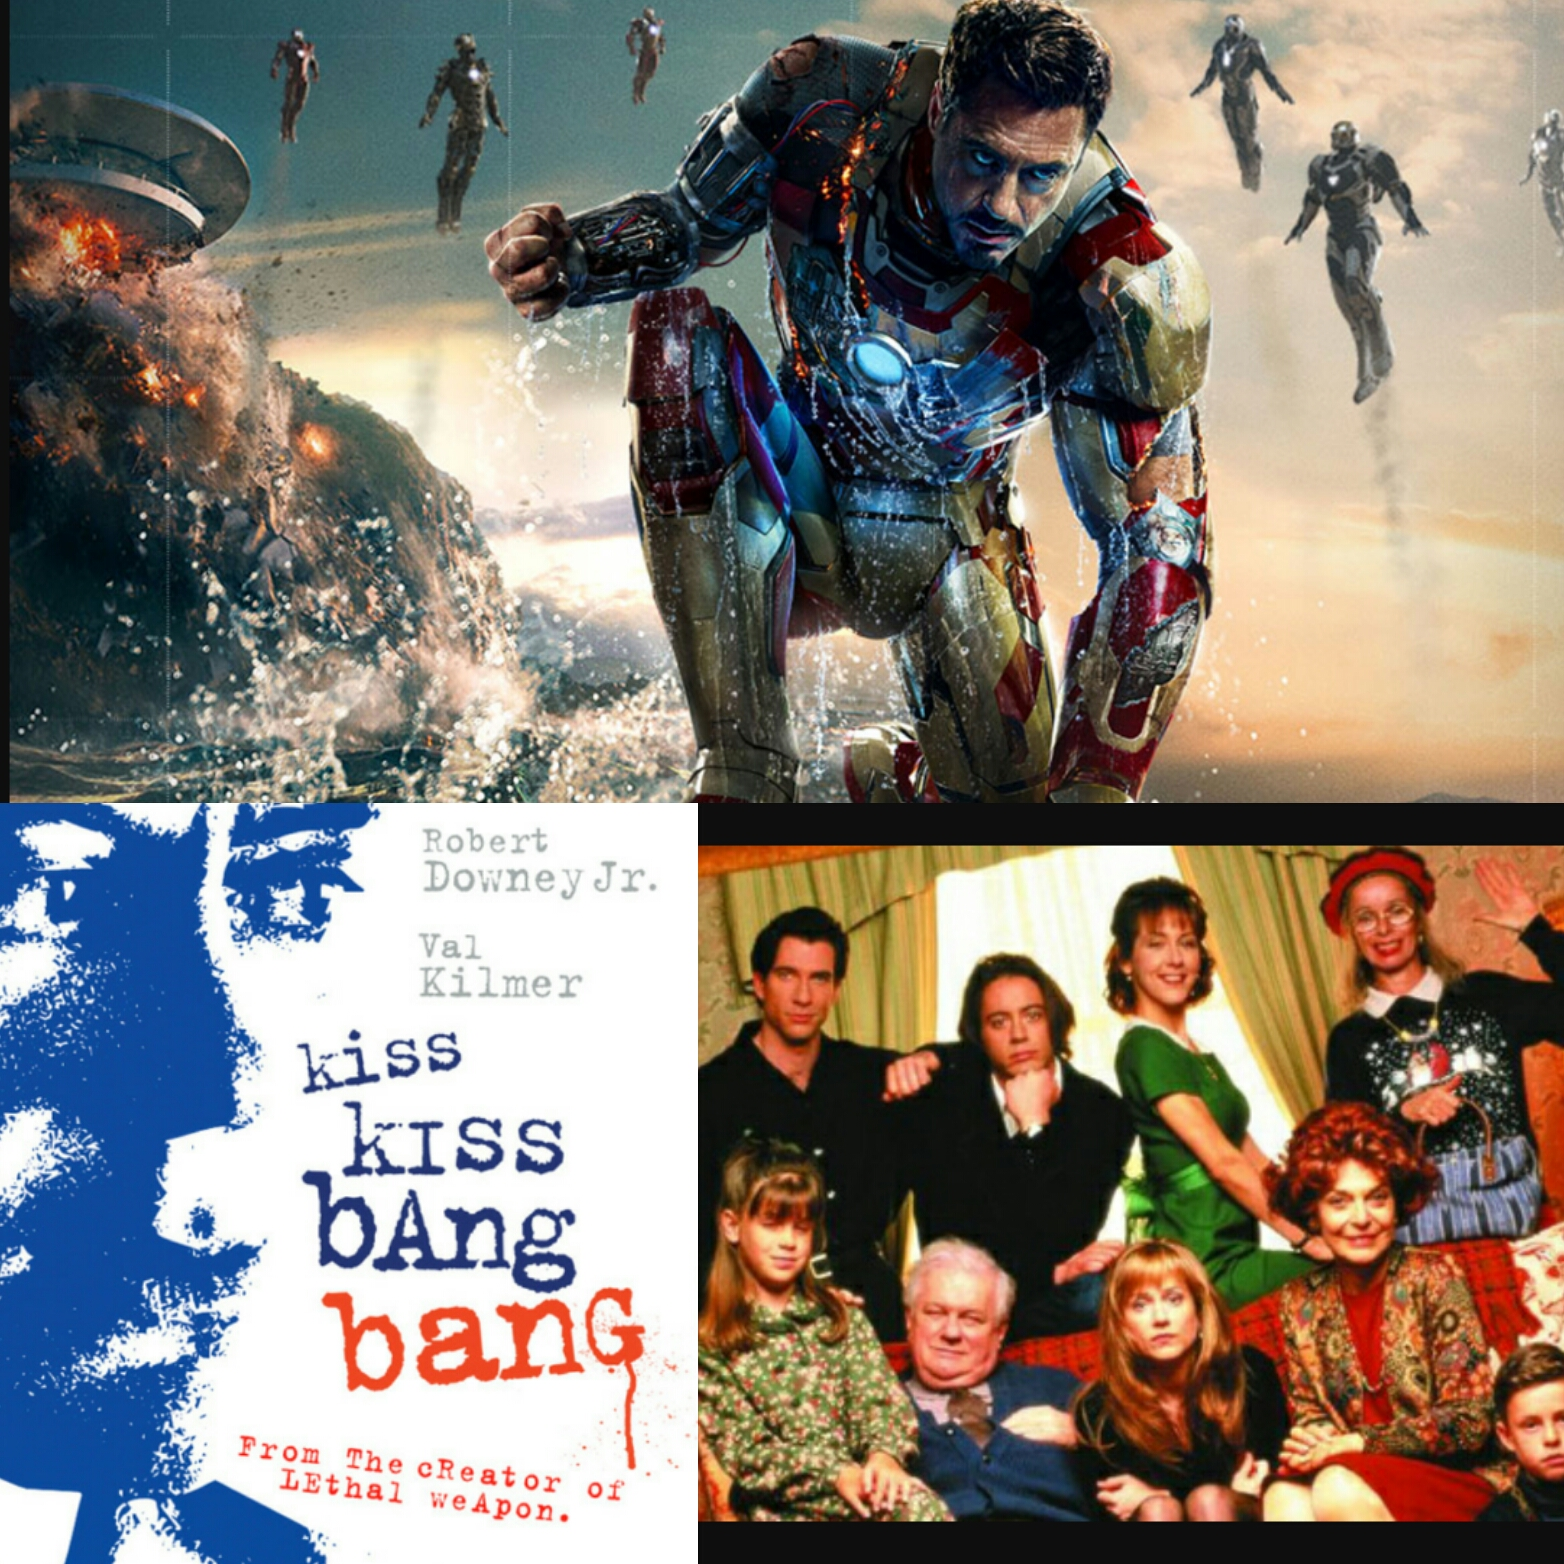 A Very Merry Robert Downey Jr Christmas! ~ What'cha Reading?